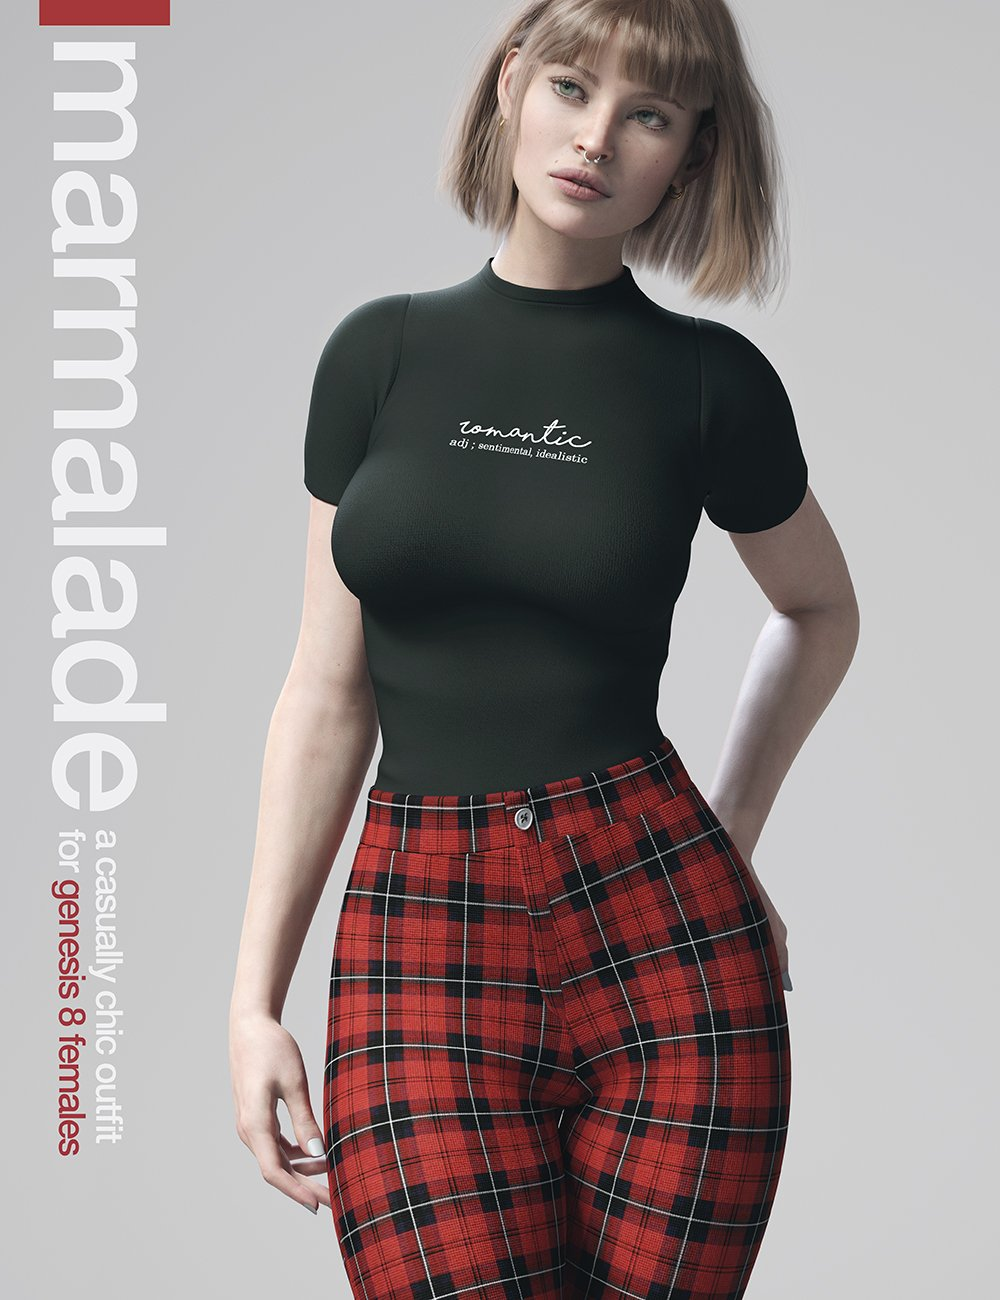 dForce Marmalade Outfit for Genesis 8 Female(s) by: peache, 3D Models by Daz 3D